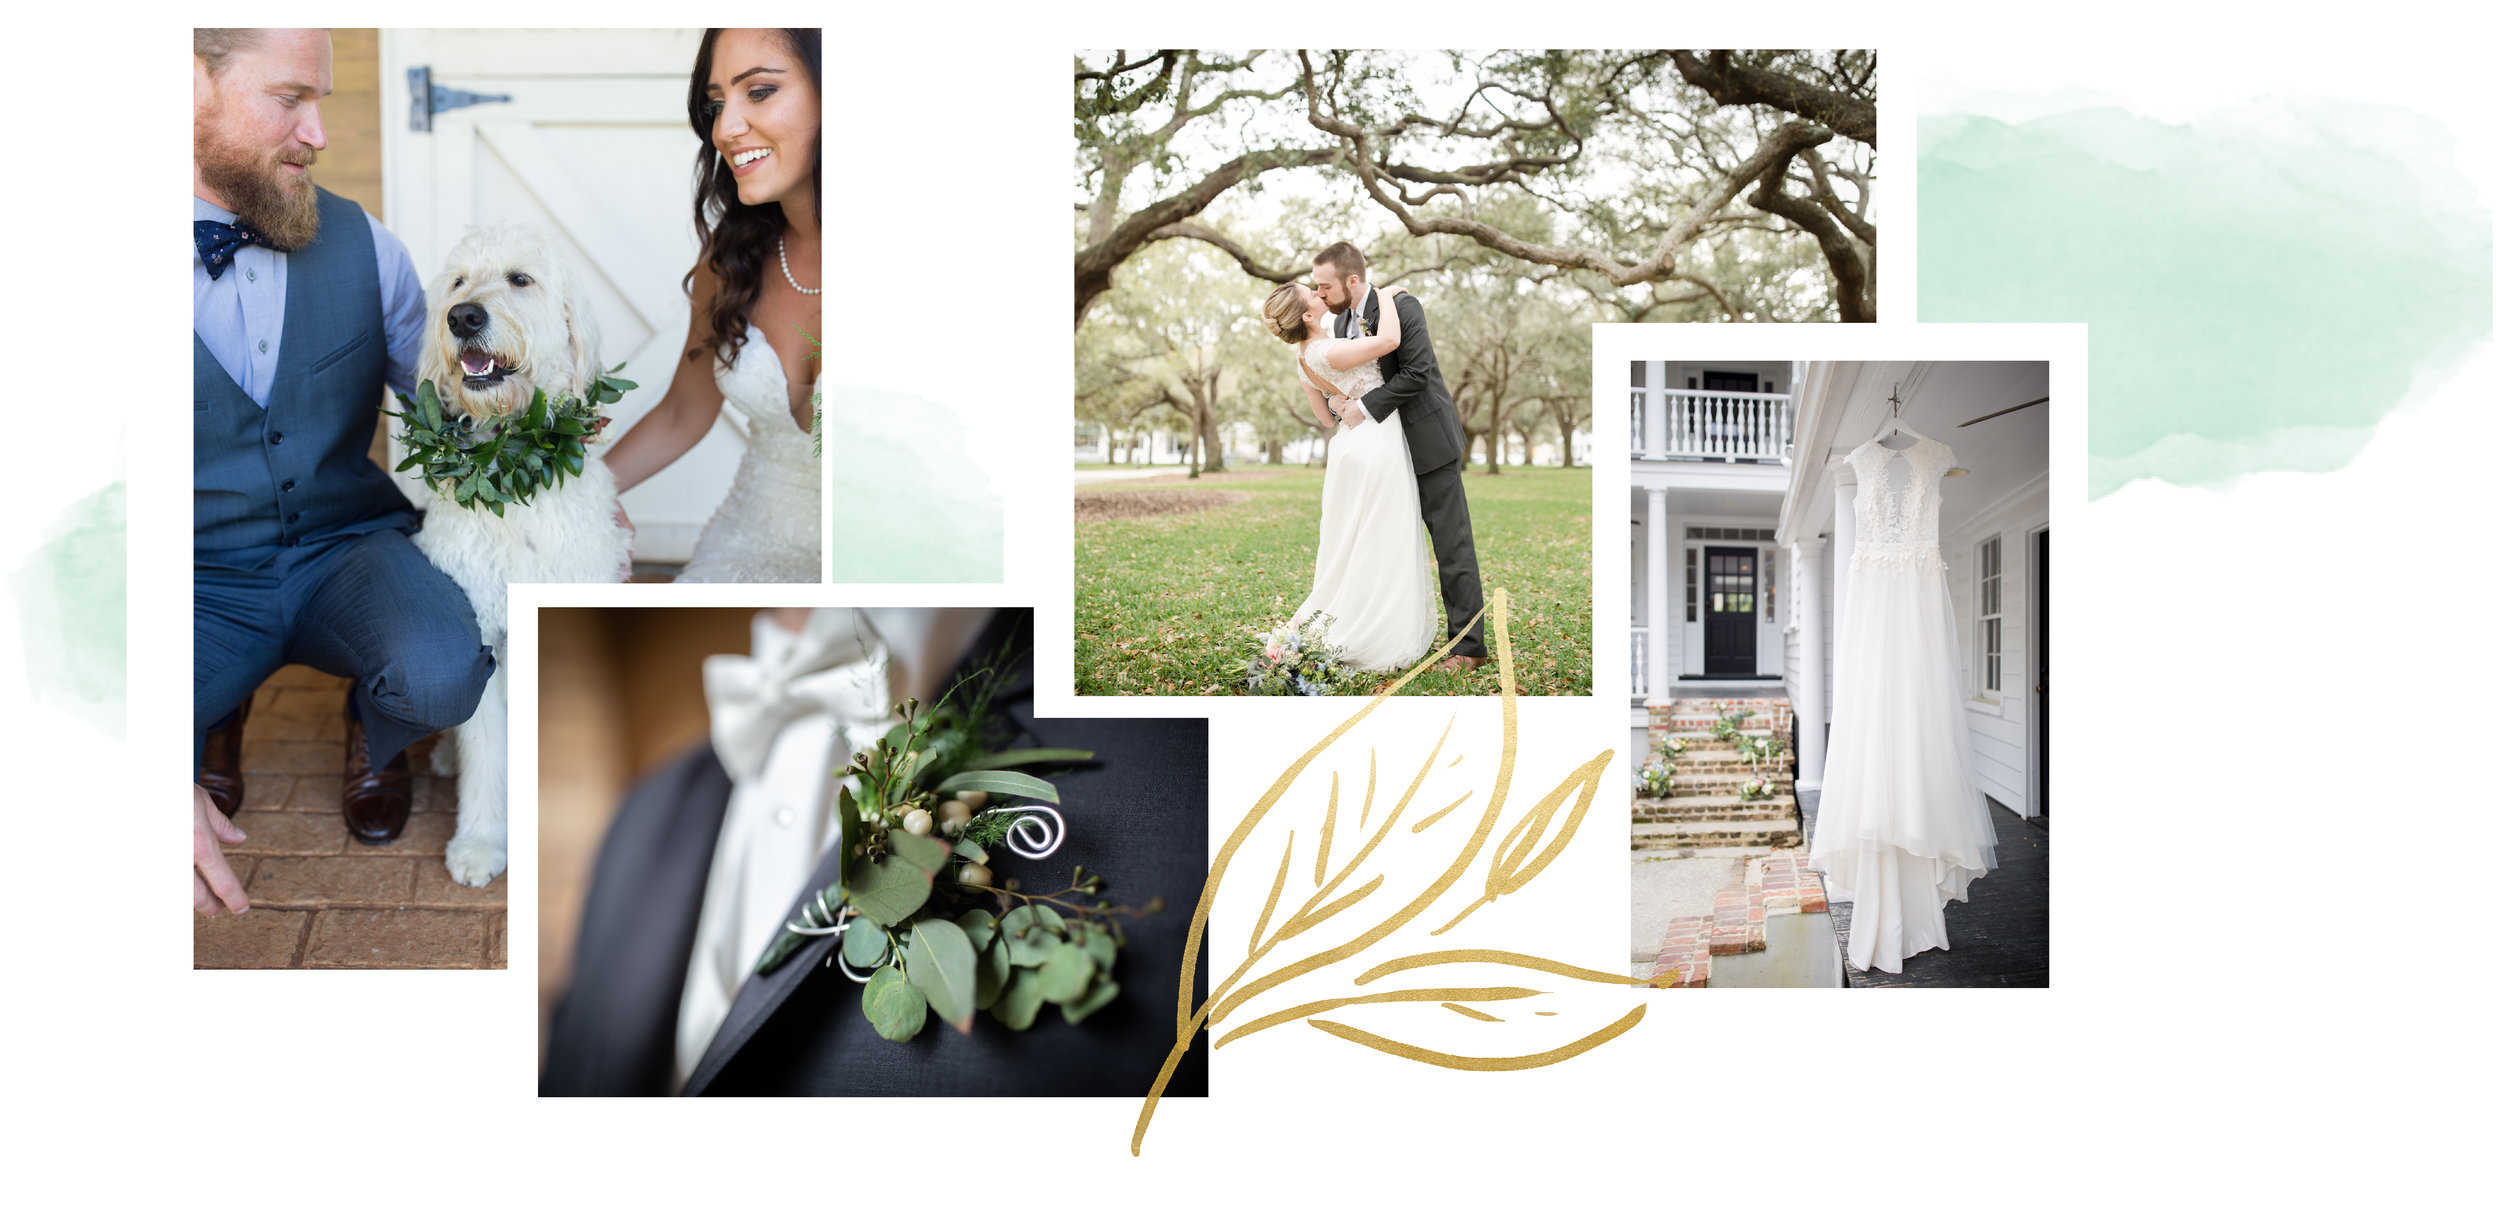 marynweddingbanner.jpg